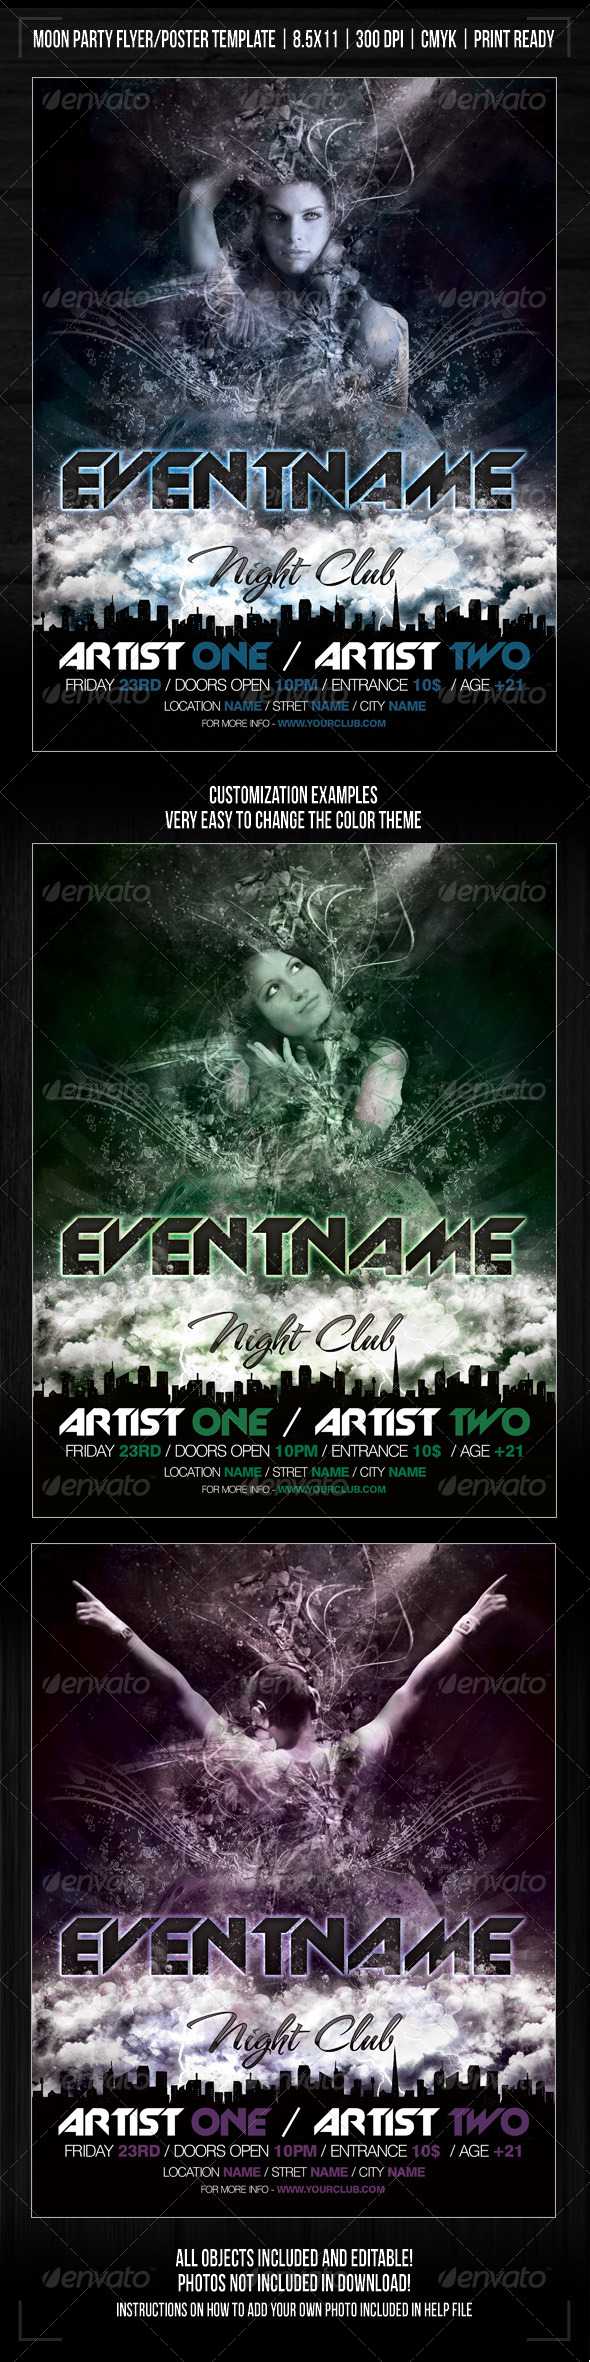 Night Club Moon Party/Concert Flyer/Poster - Clubs & Parties Events